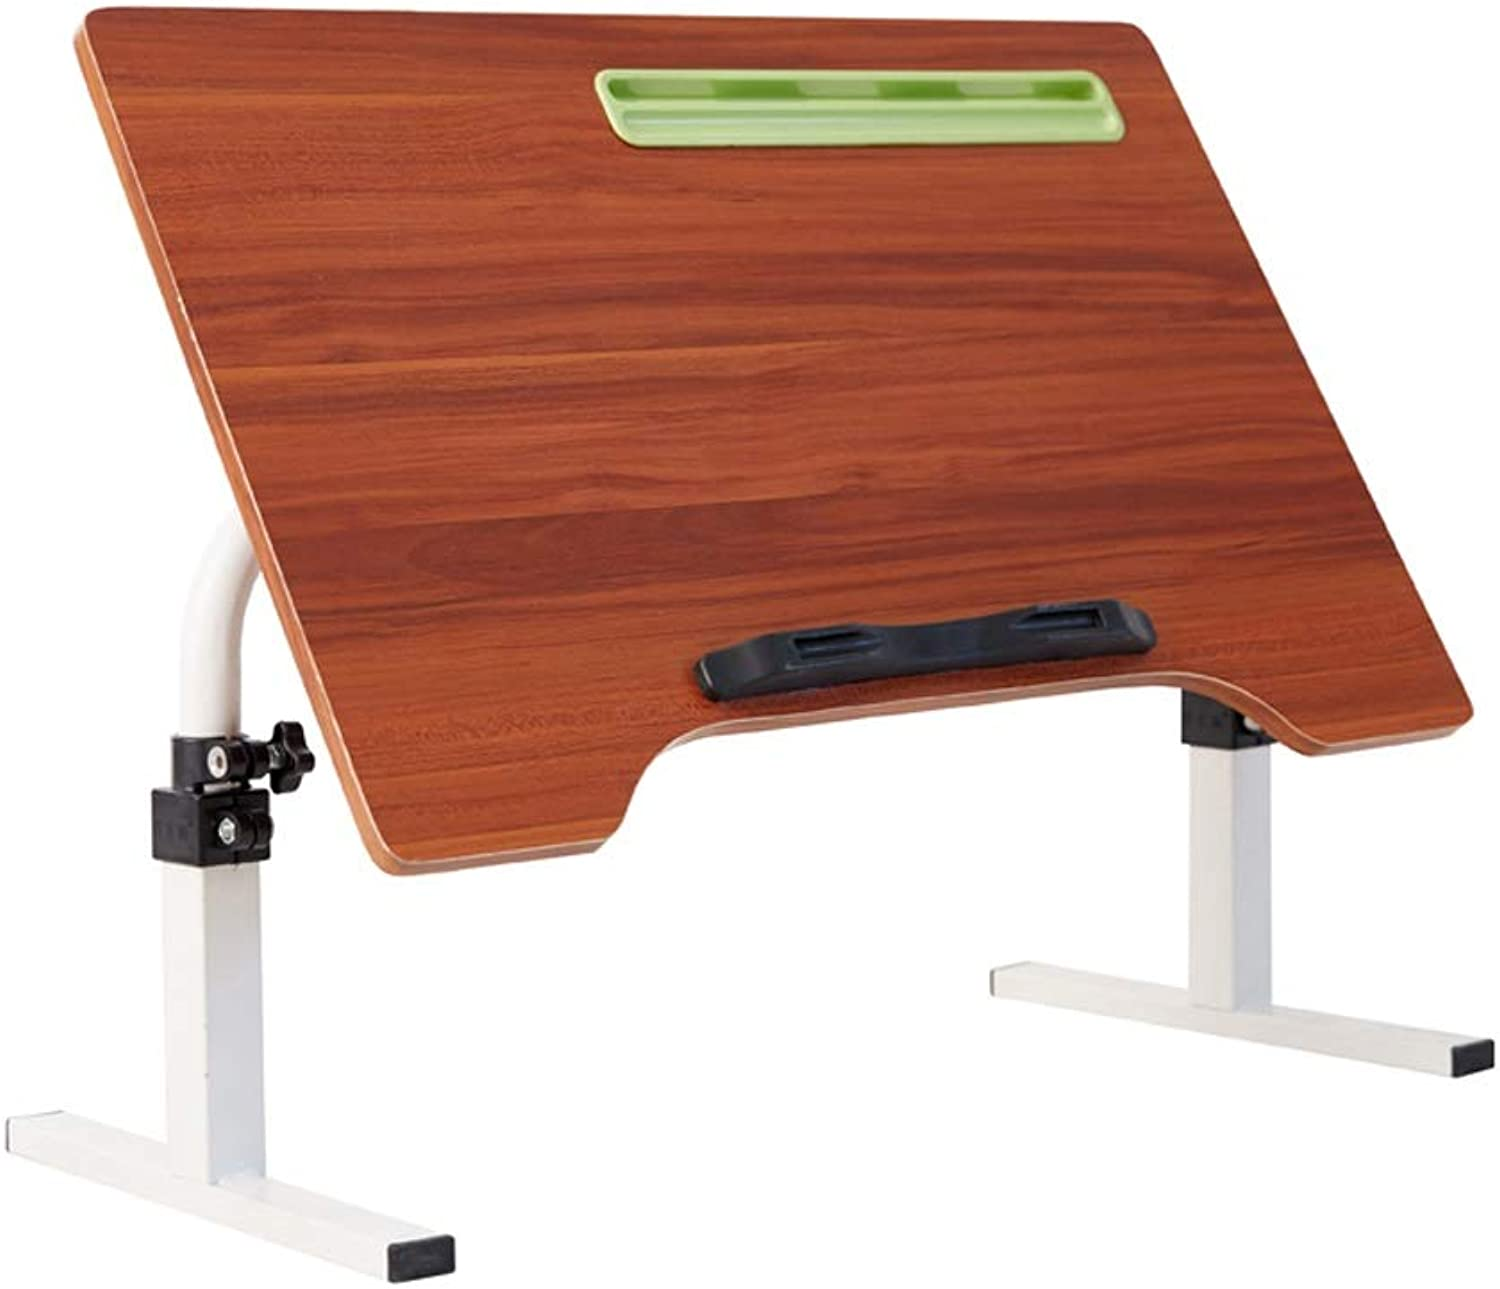 Foldable redating Adjustment Angle Table, Lazy Dormitory, Office Home Table, 60x40x45cm, Three colors Optional (color   Red Chestnut color)